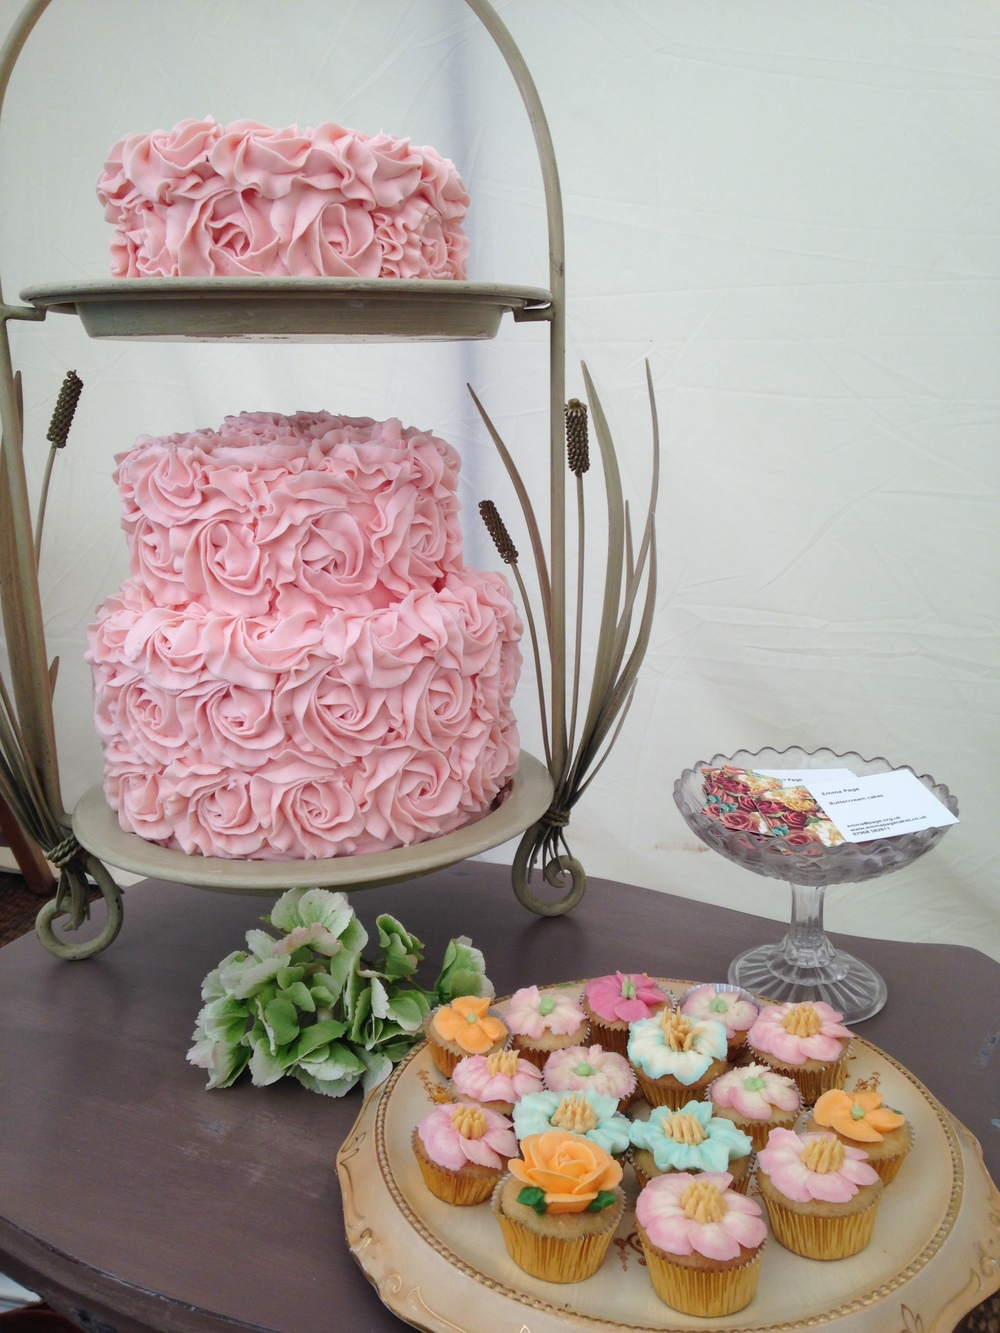 pink rose swirl buttercream cake